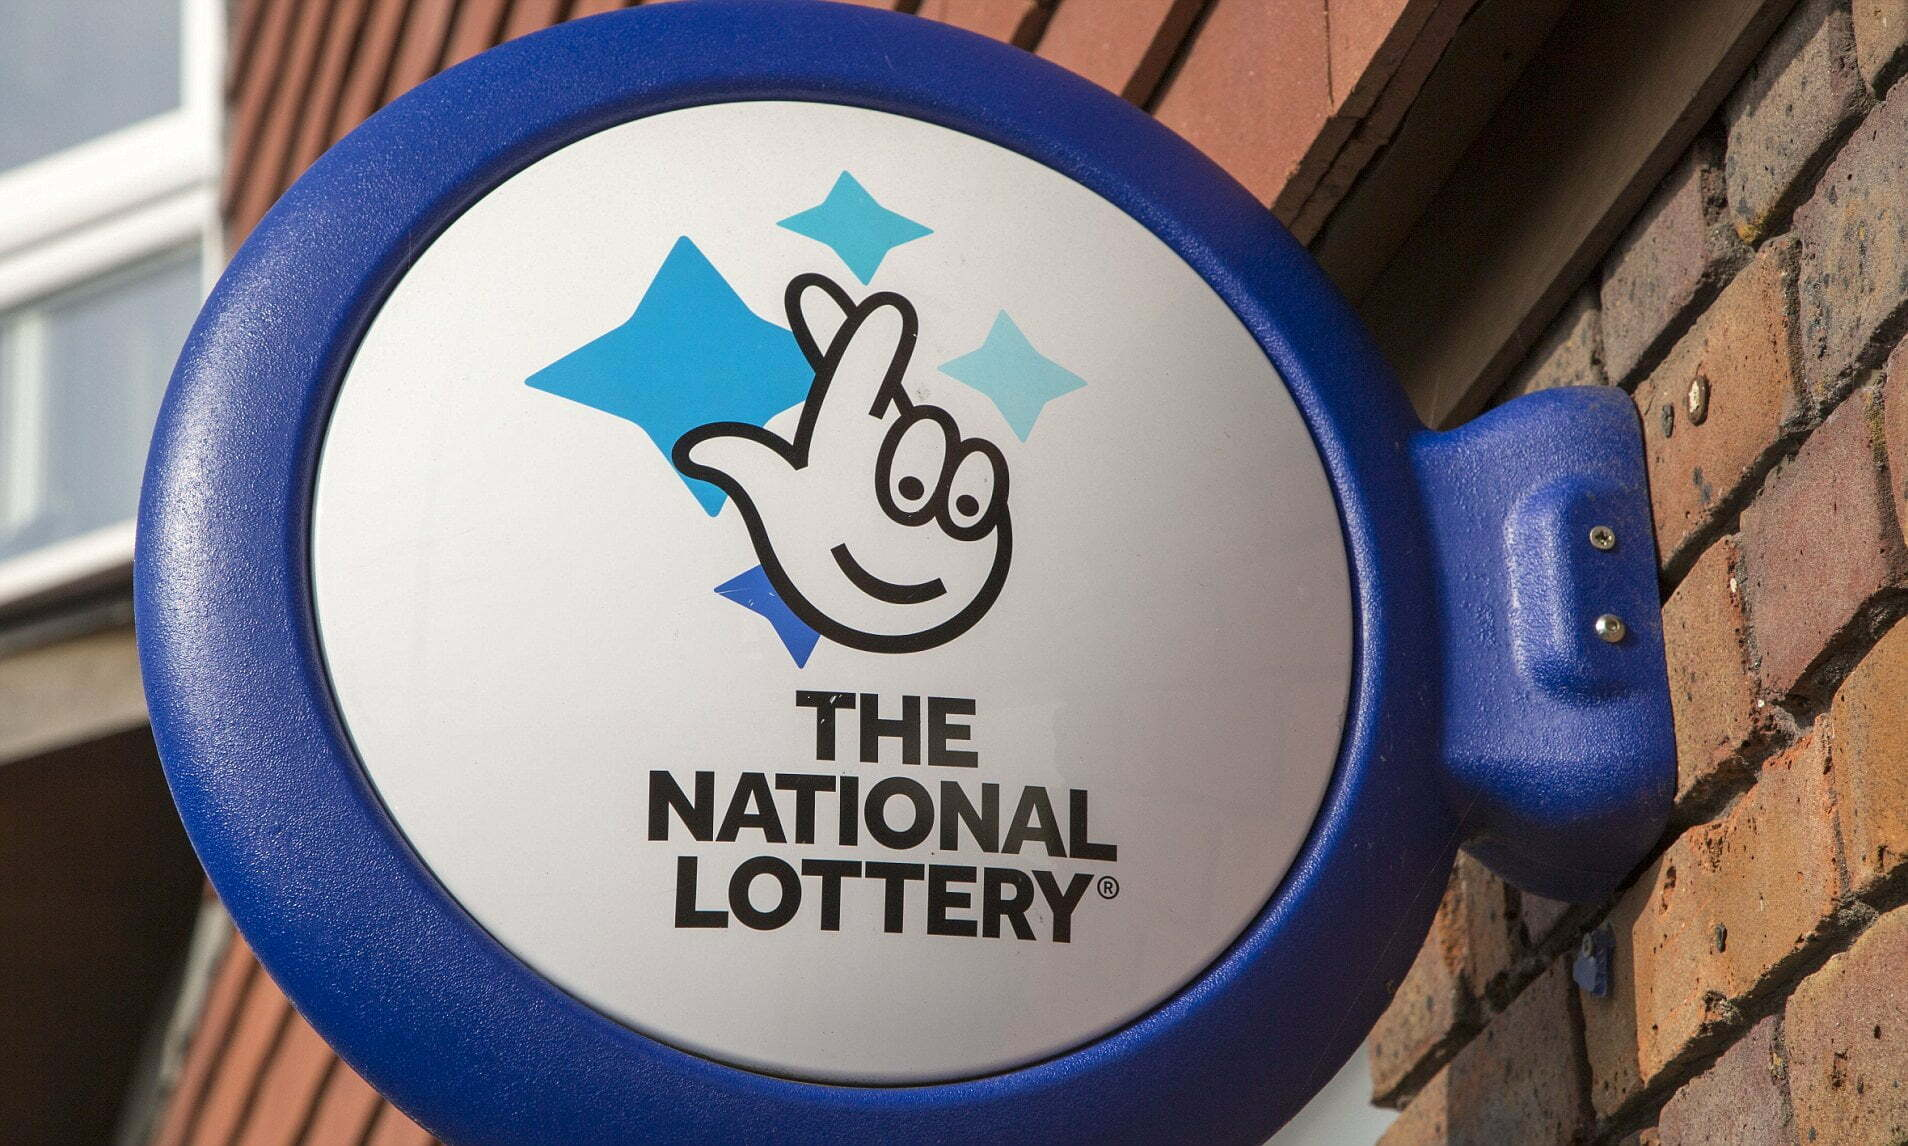 The National Lottery Launches 'The Magic Number' To Celebrate 25 Years